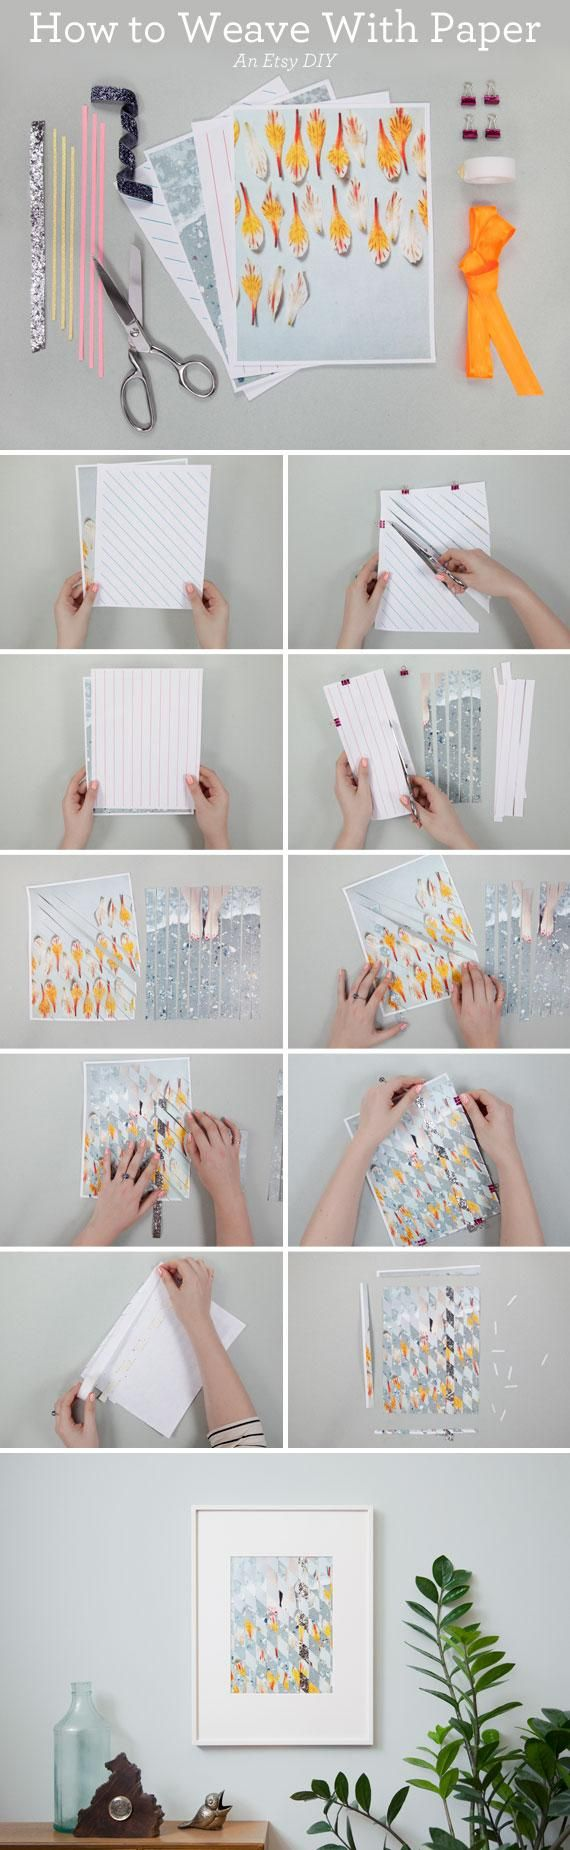 From ETSY BLOGS: Create original art with this easy tutorial for paper weaving  #getcreative #adelinecrafts